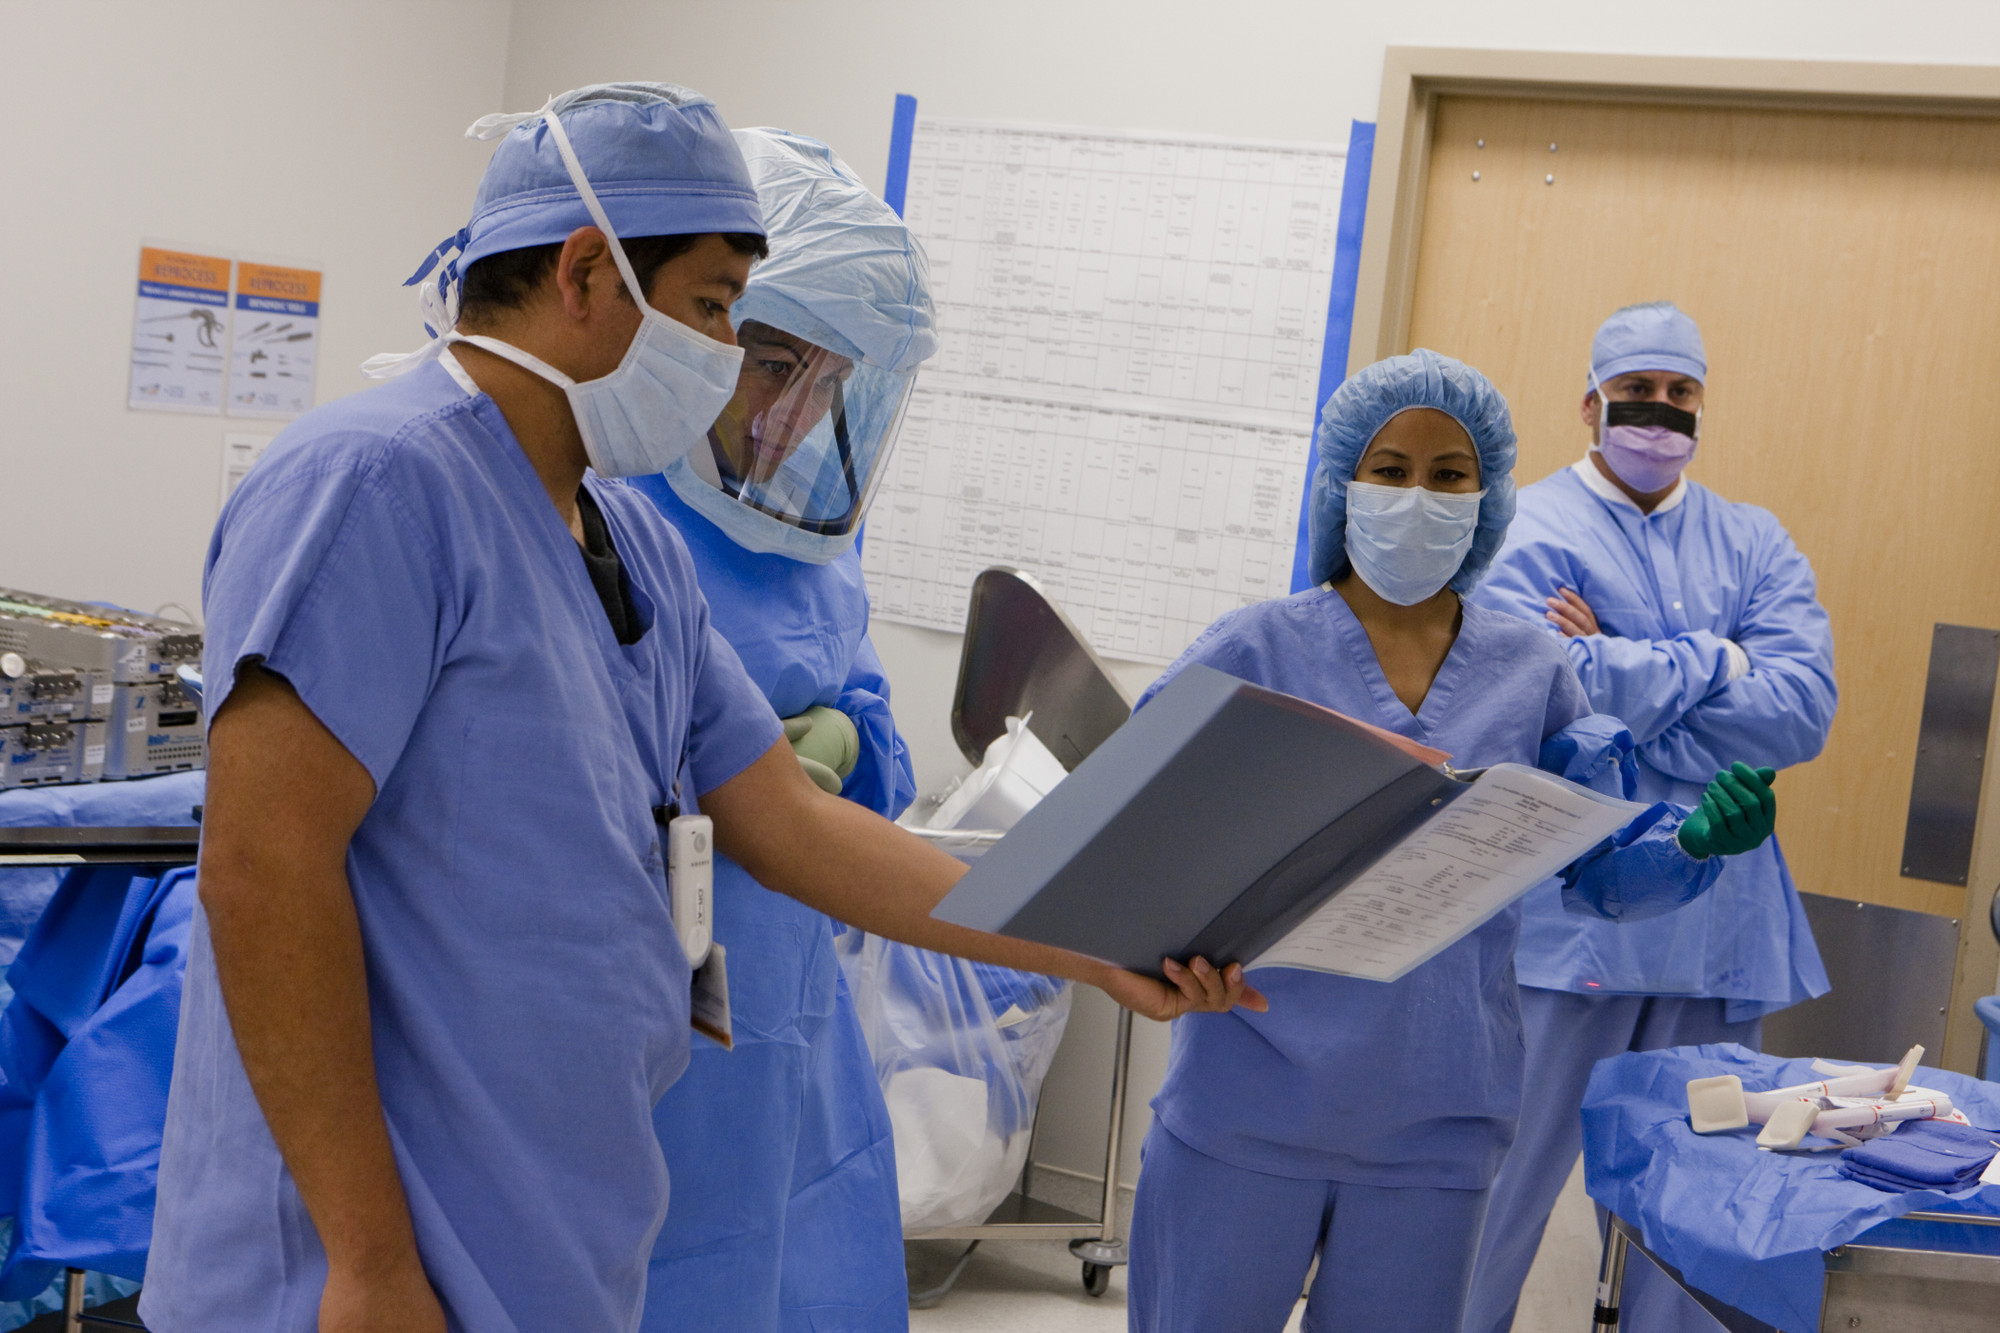 A team of surgeons gets ready to operate